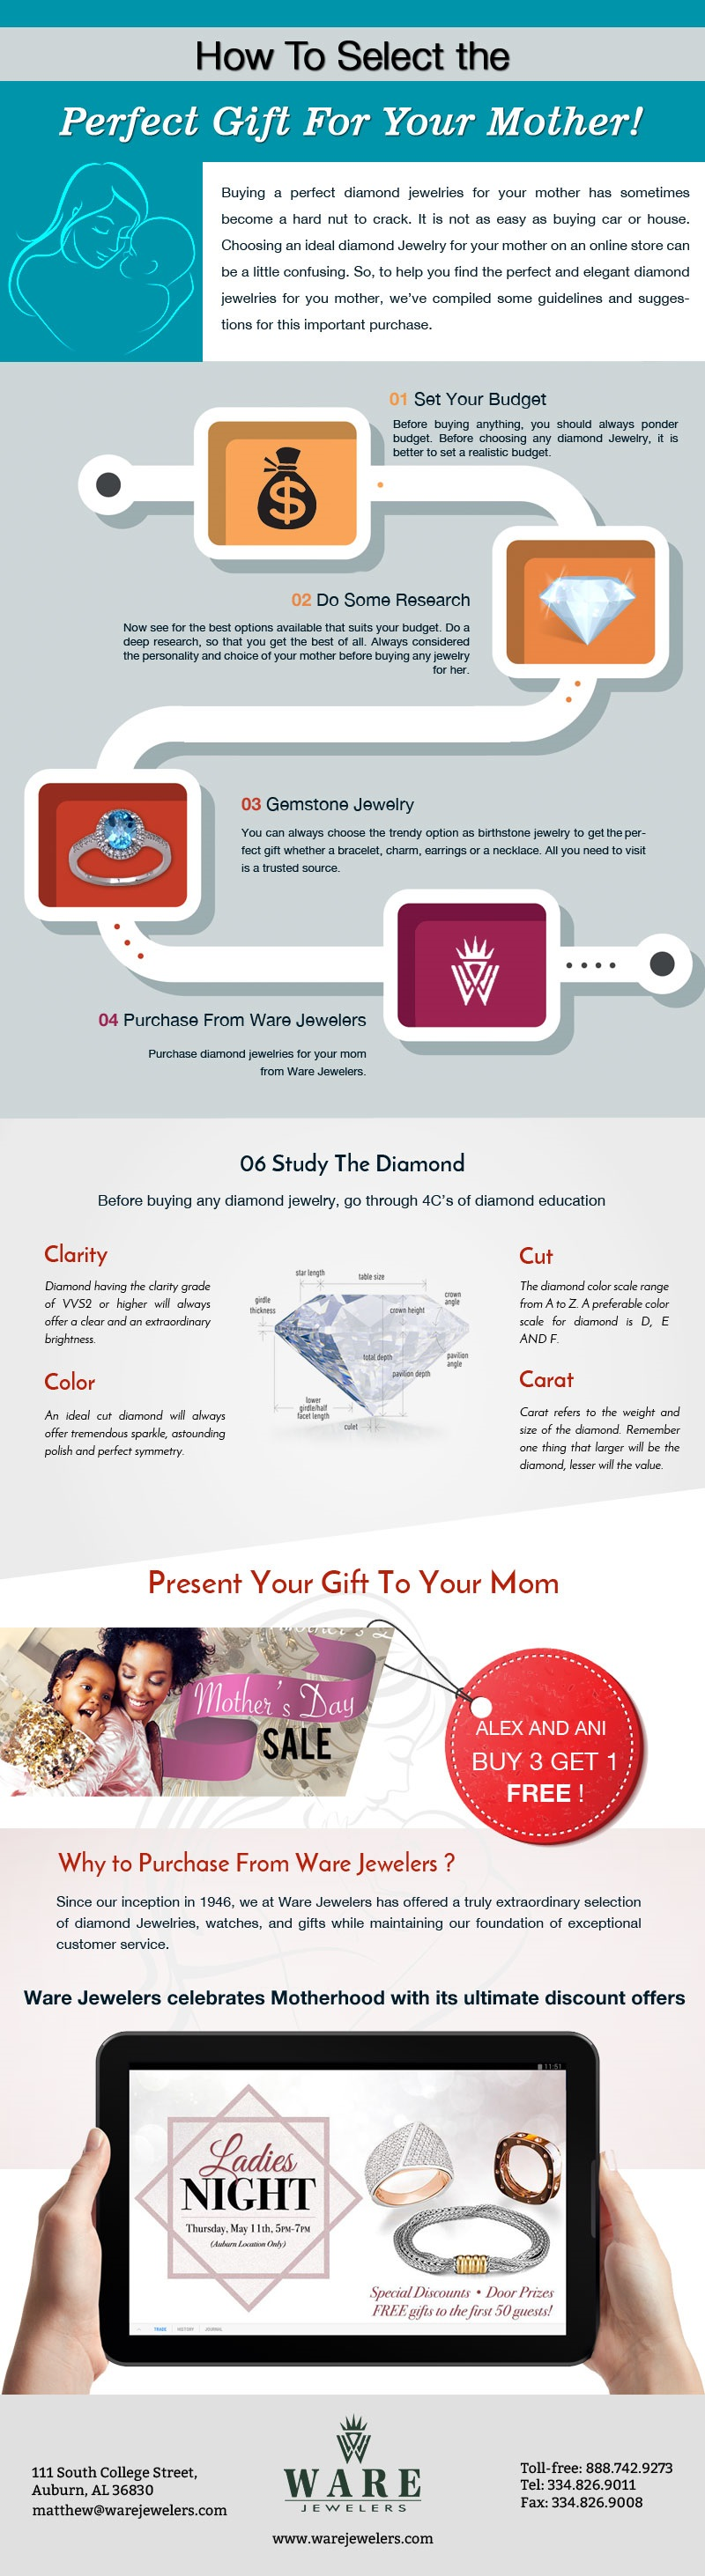 How To Select Perfect Gift For Your Mother?